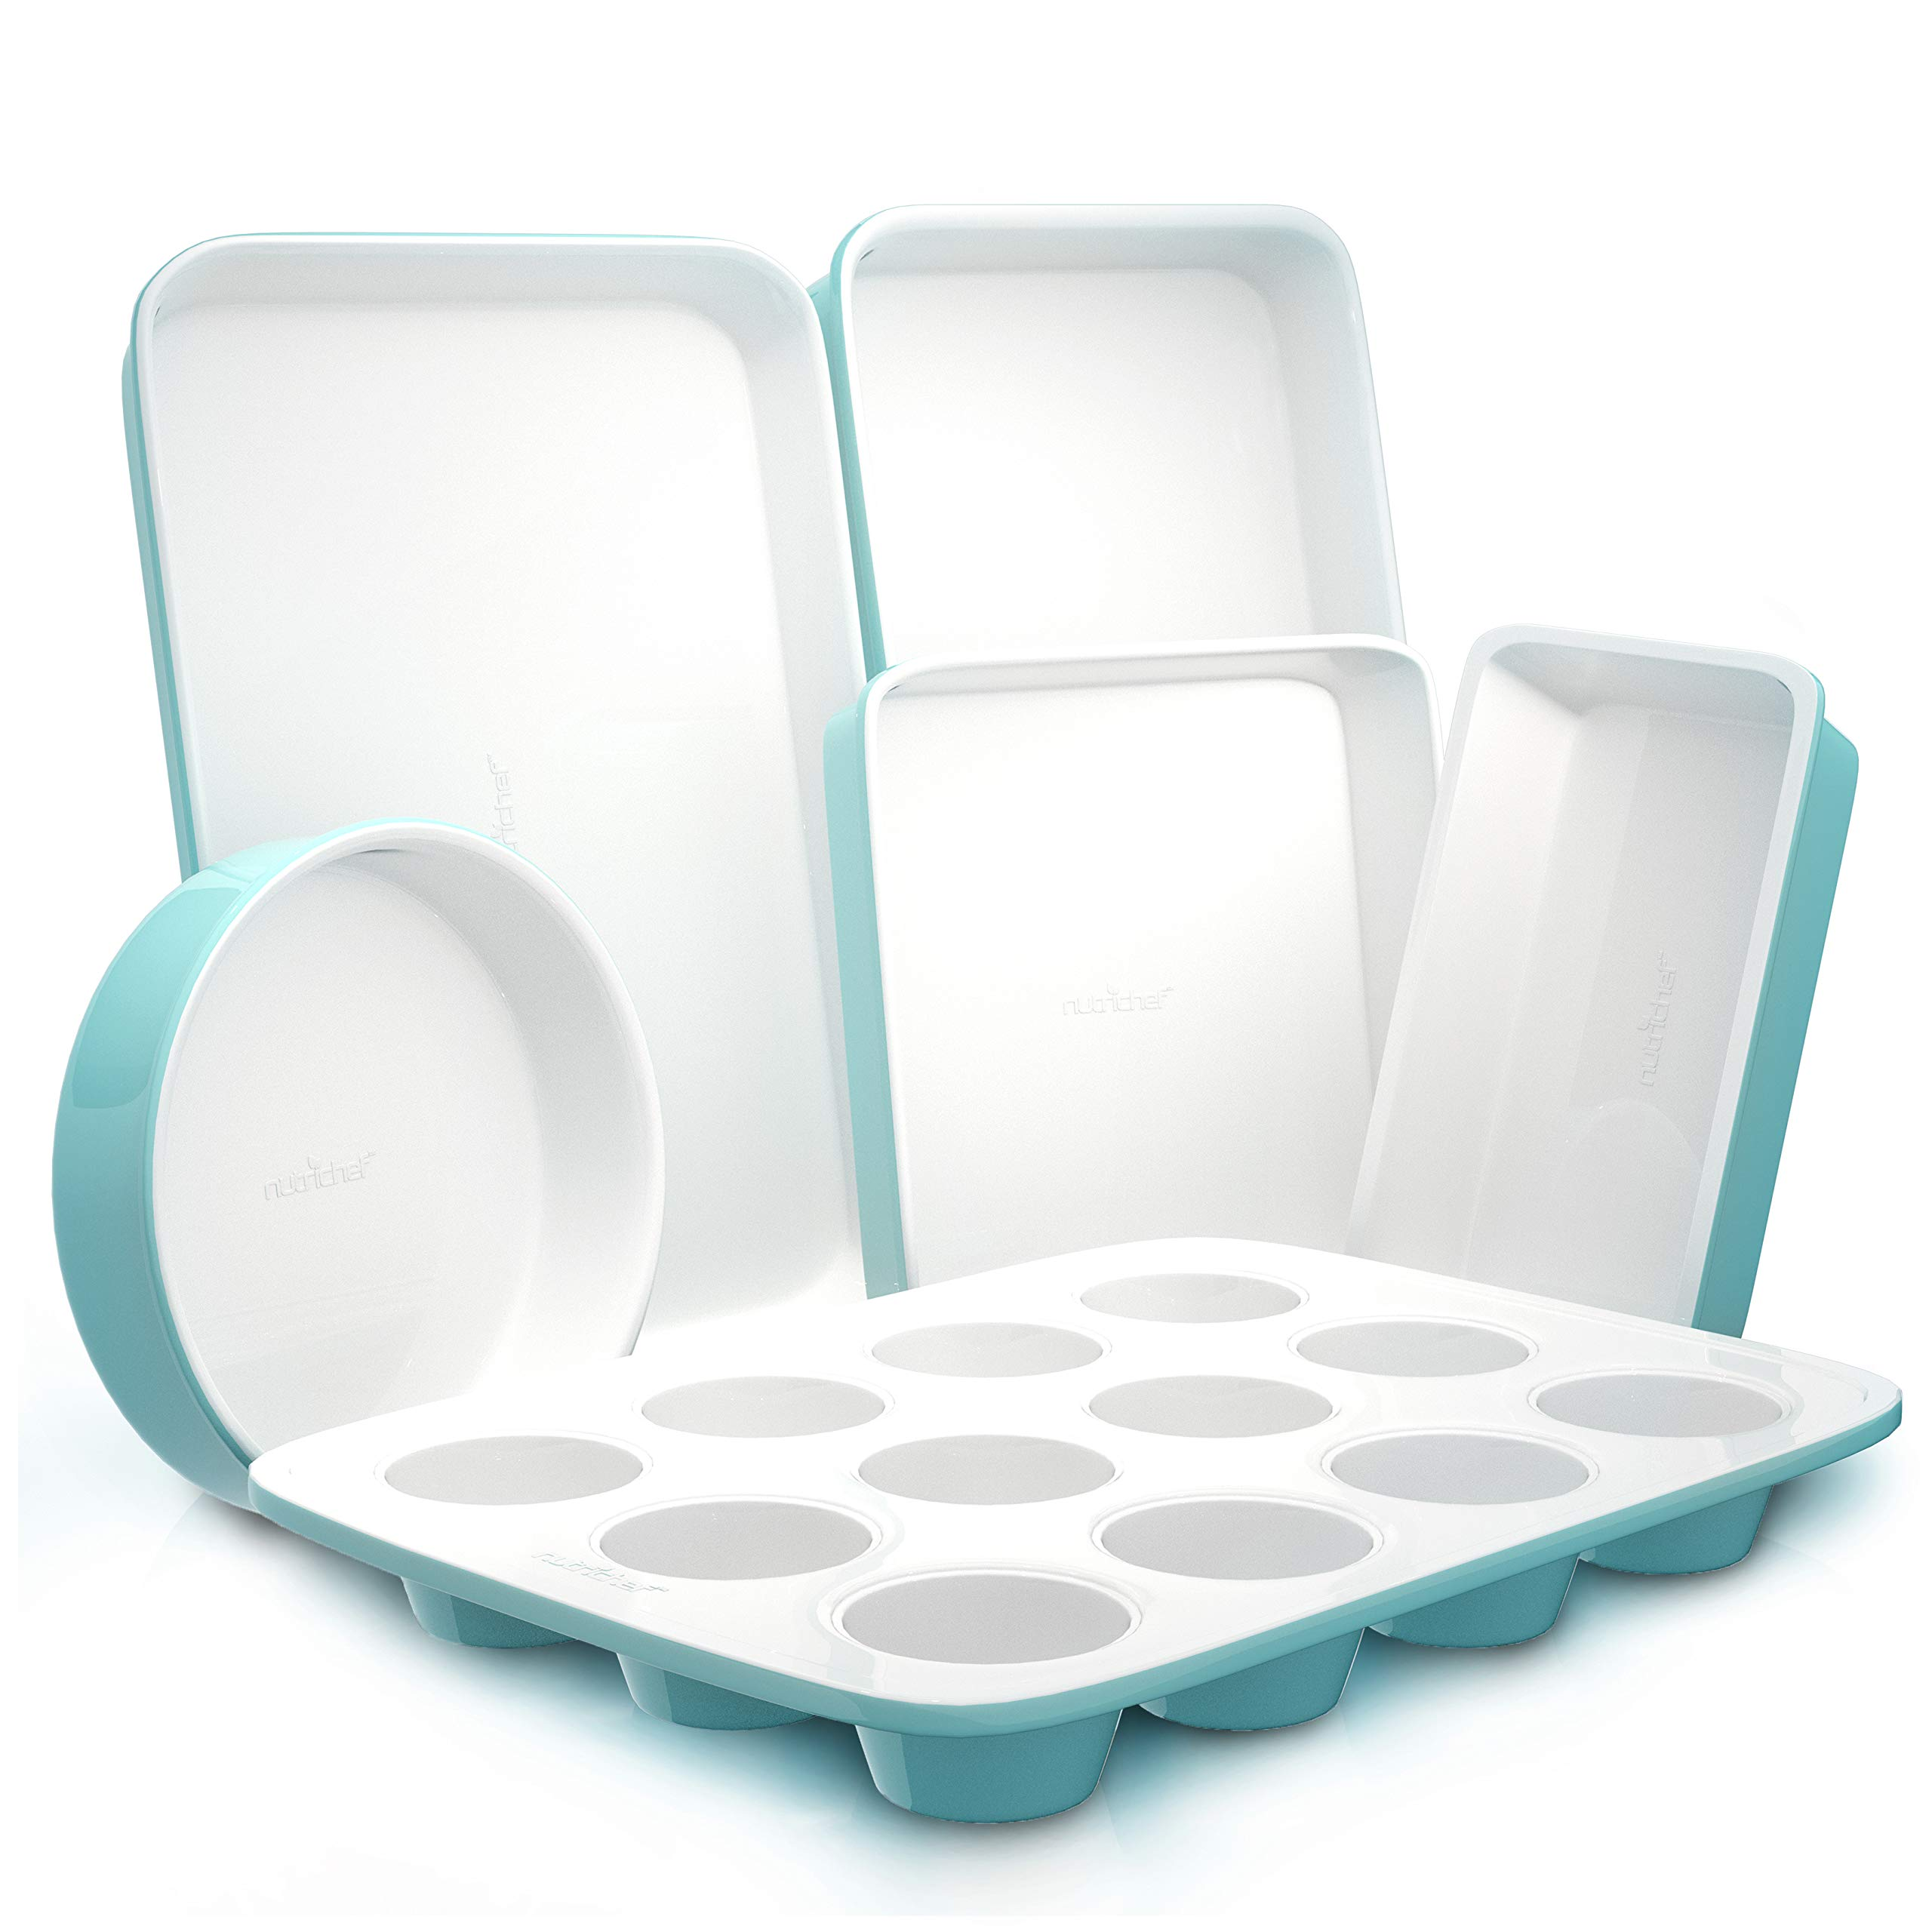 6-Piece Kitchen Oven Baking Pans - Professional Premium Non-Stick Cookie Sheet Pan Set, Stylish & Attractive Green Pan & White Inside Made of Ceramic Coating for Baking - Nutrichef NCBK6CT5